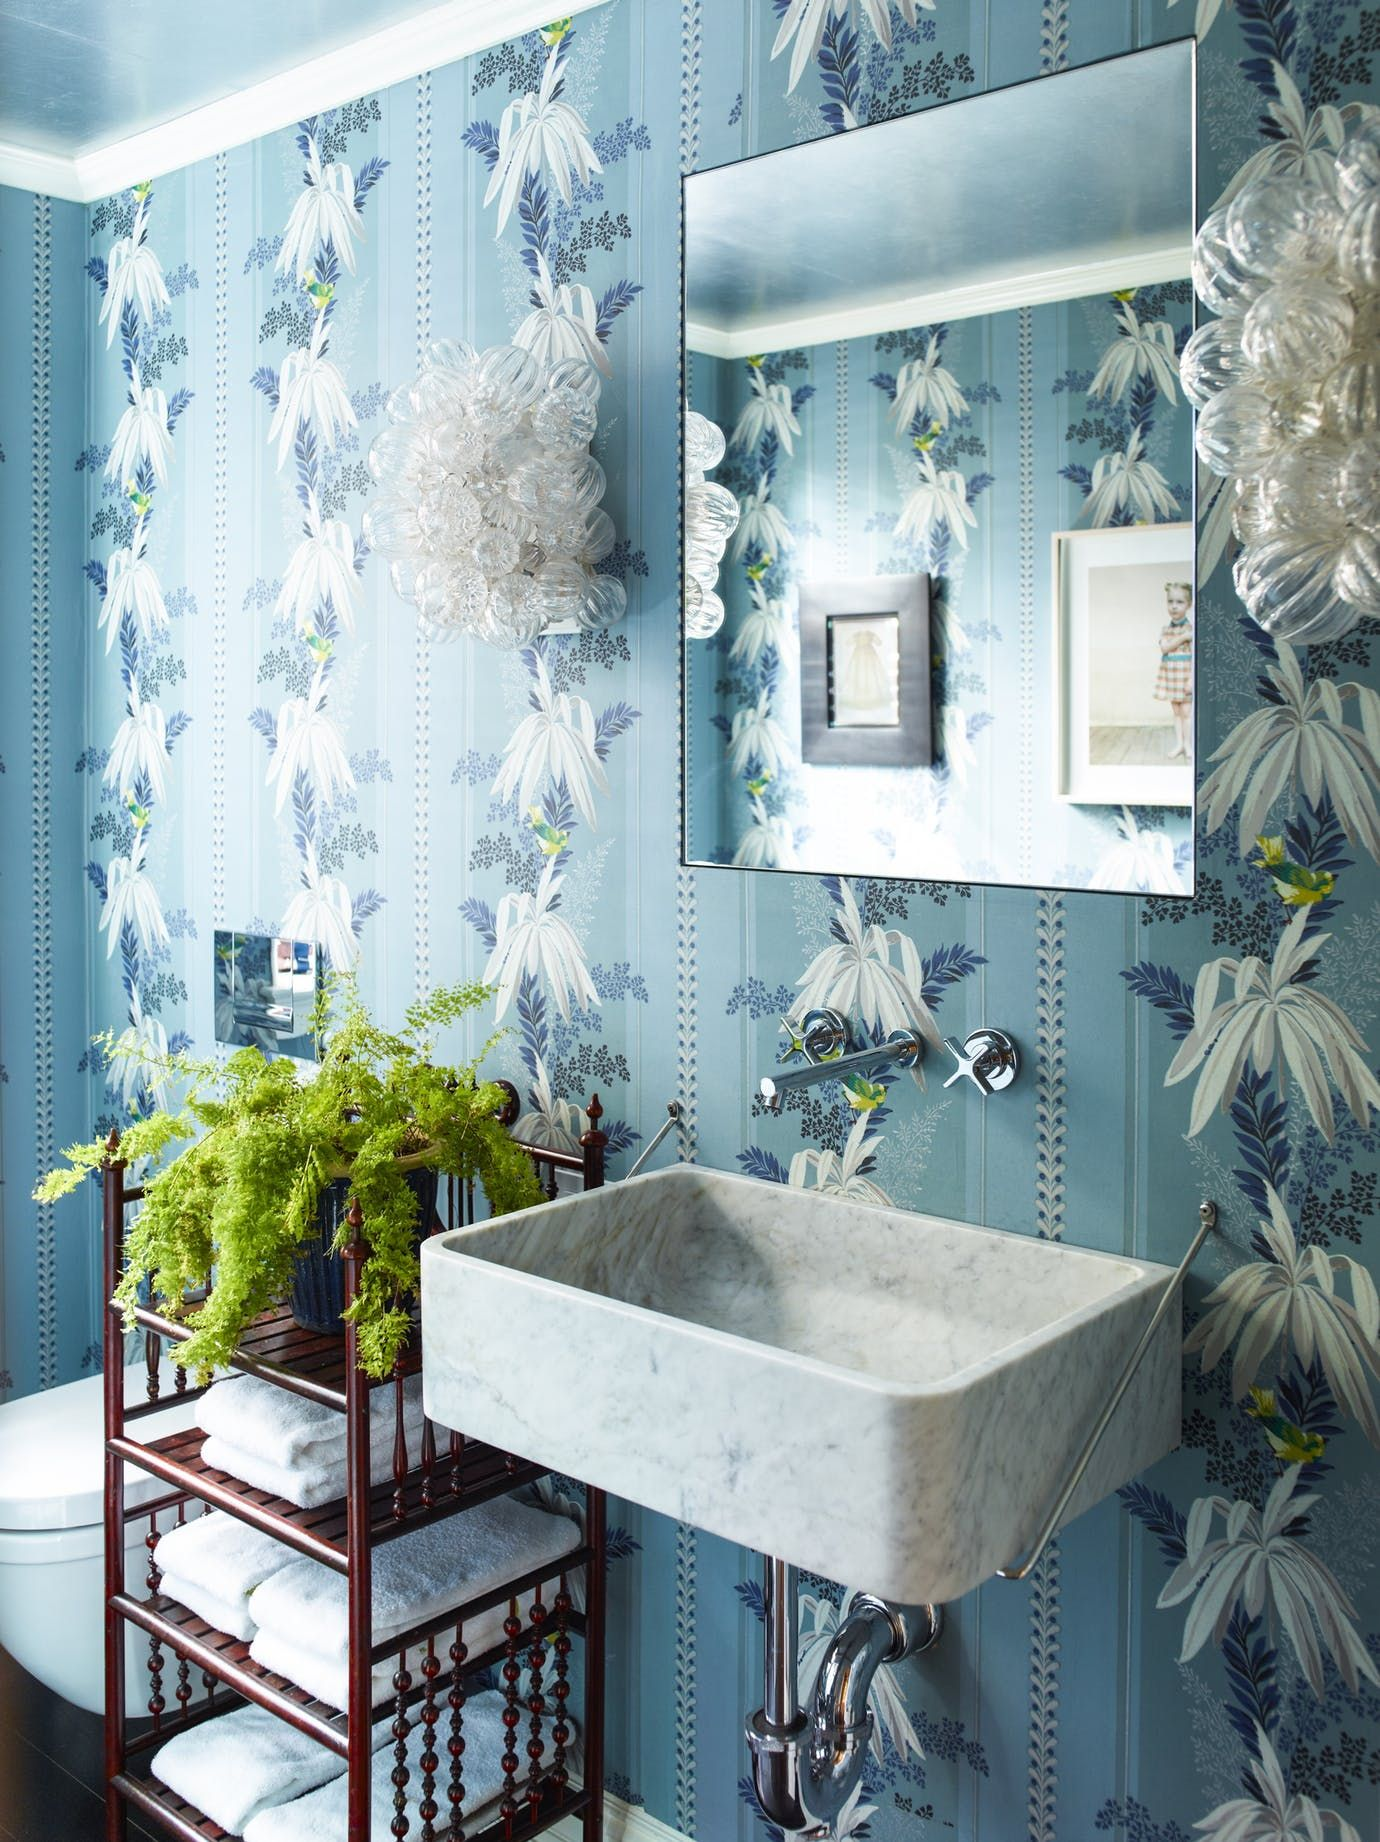 Powder Room With Blue, Floral Wallpaper Bath Modern Eclectic By